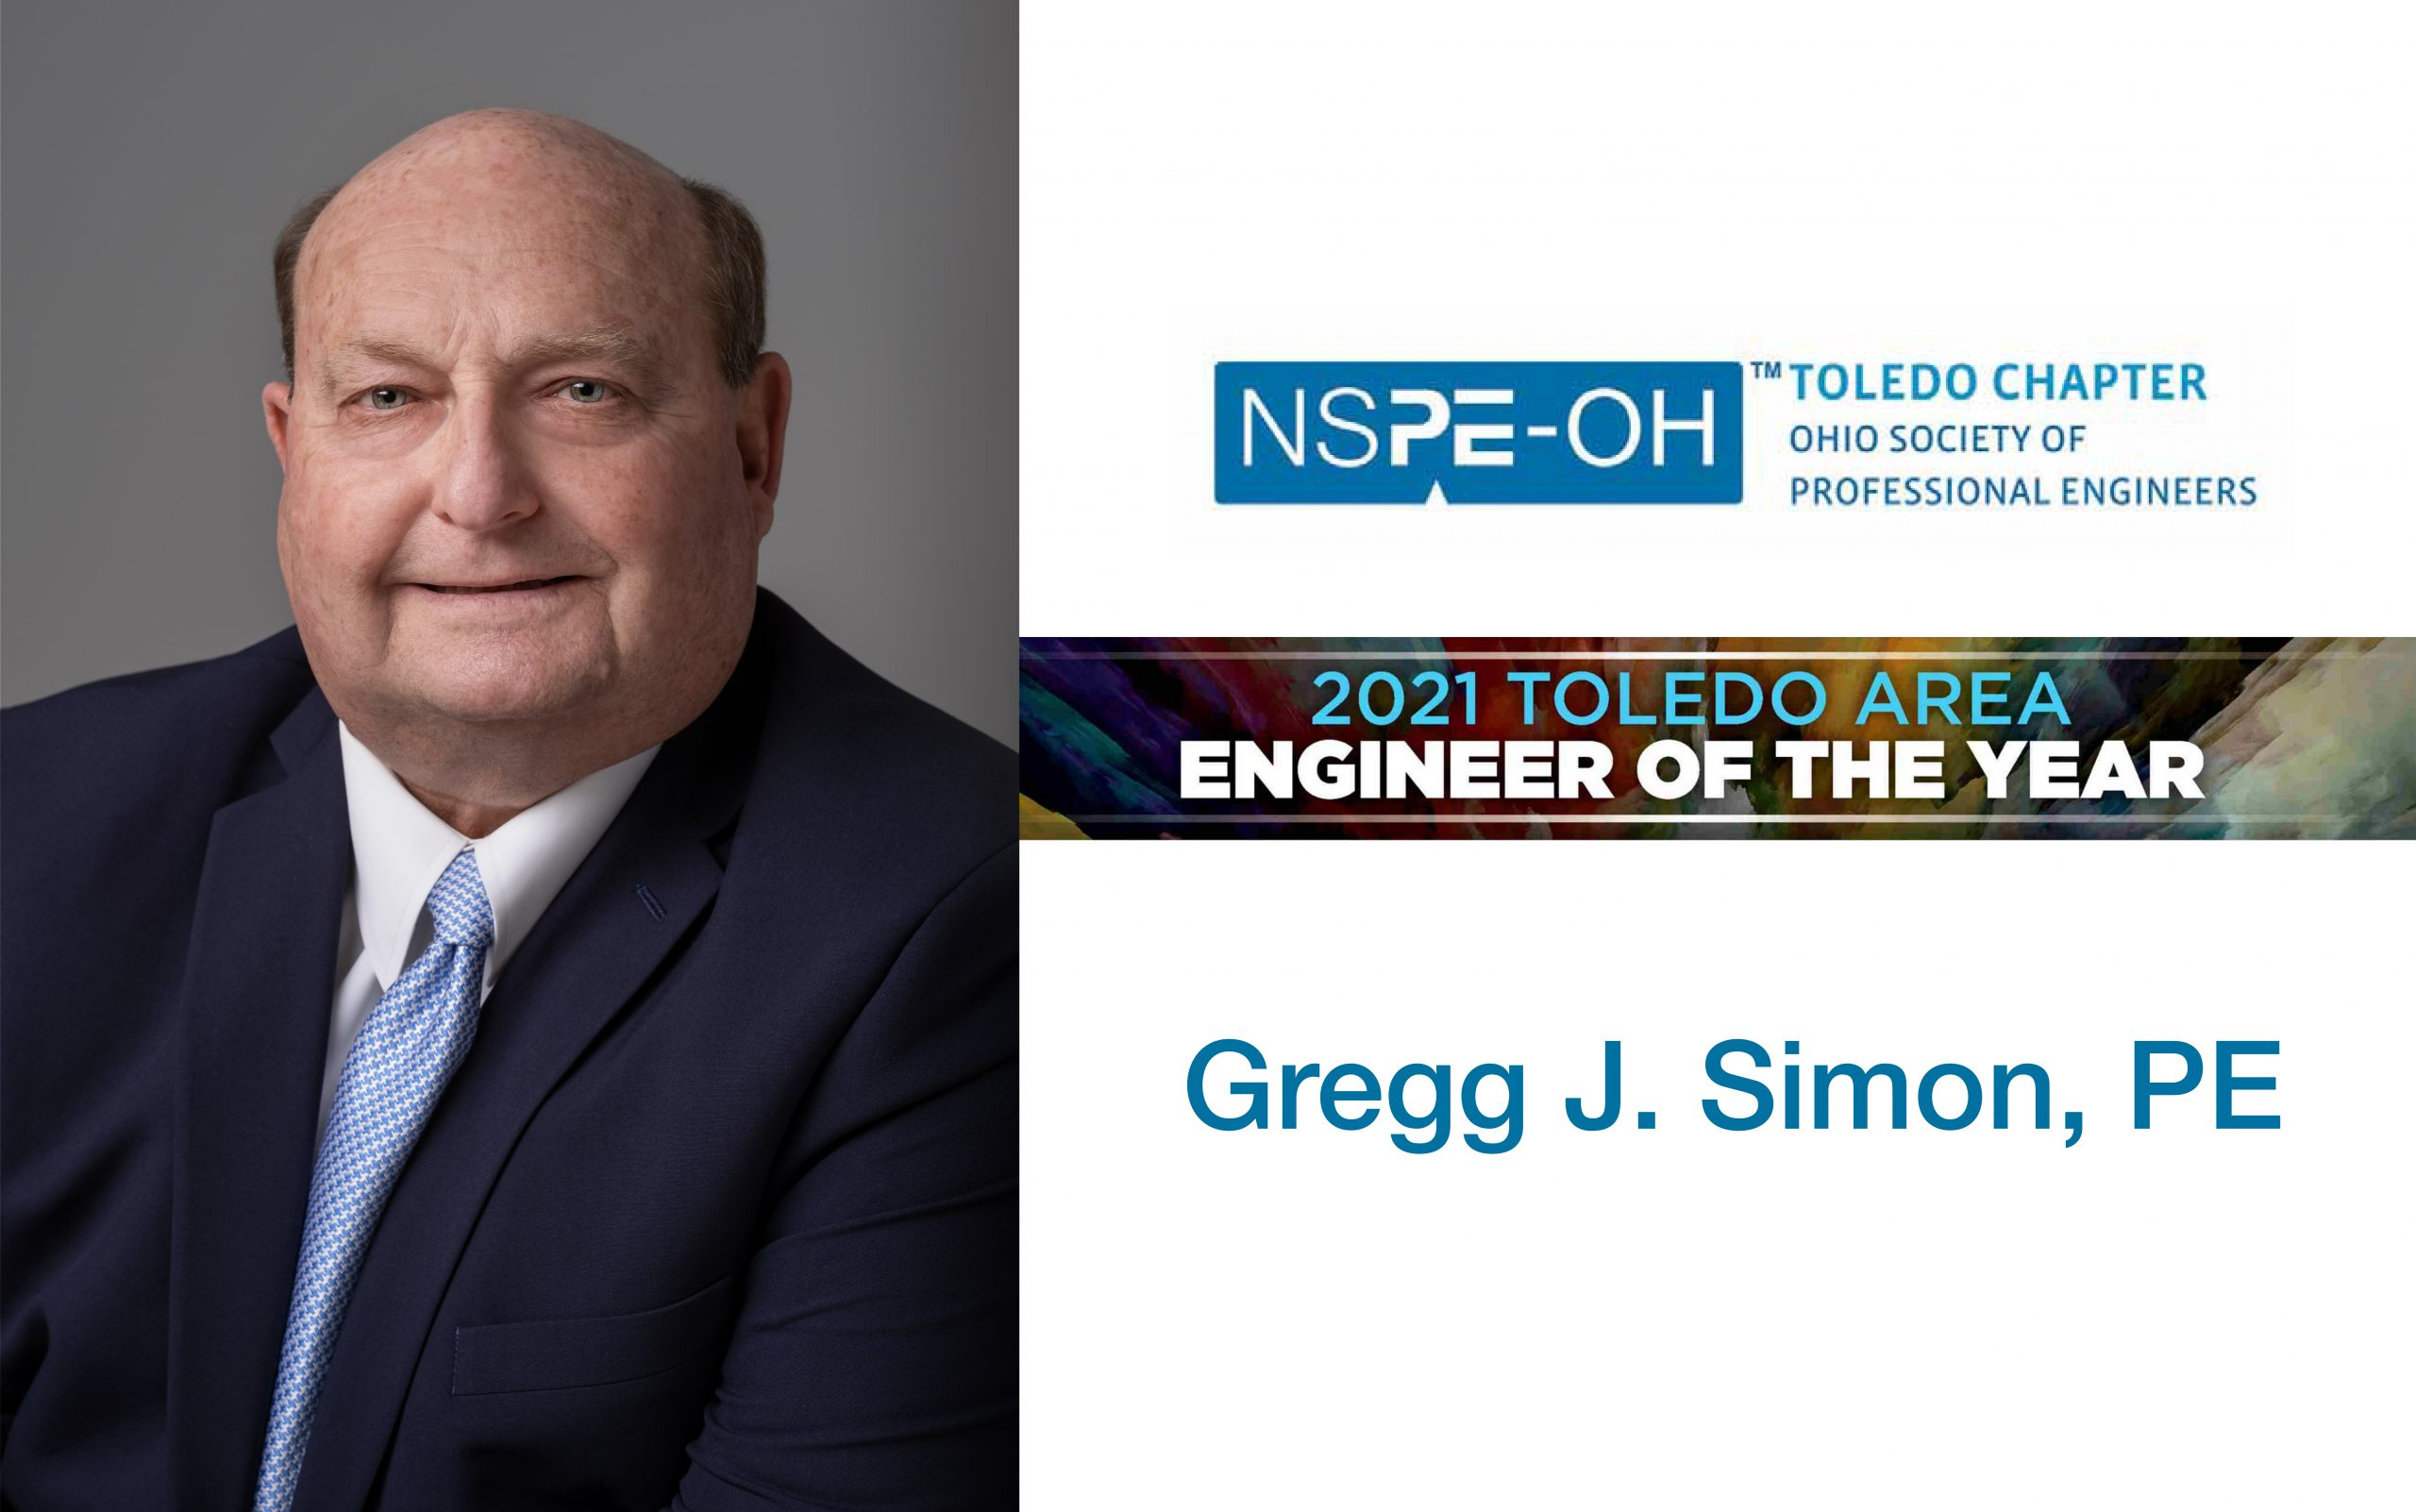 Gregg J. Simon, PE, Selected As 2021 Toledo Area Engineer Of The Year